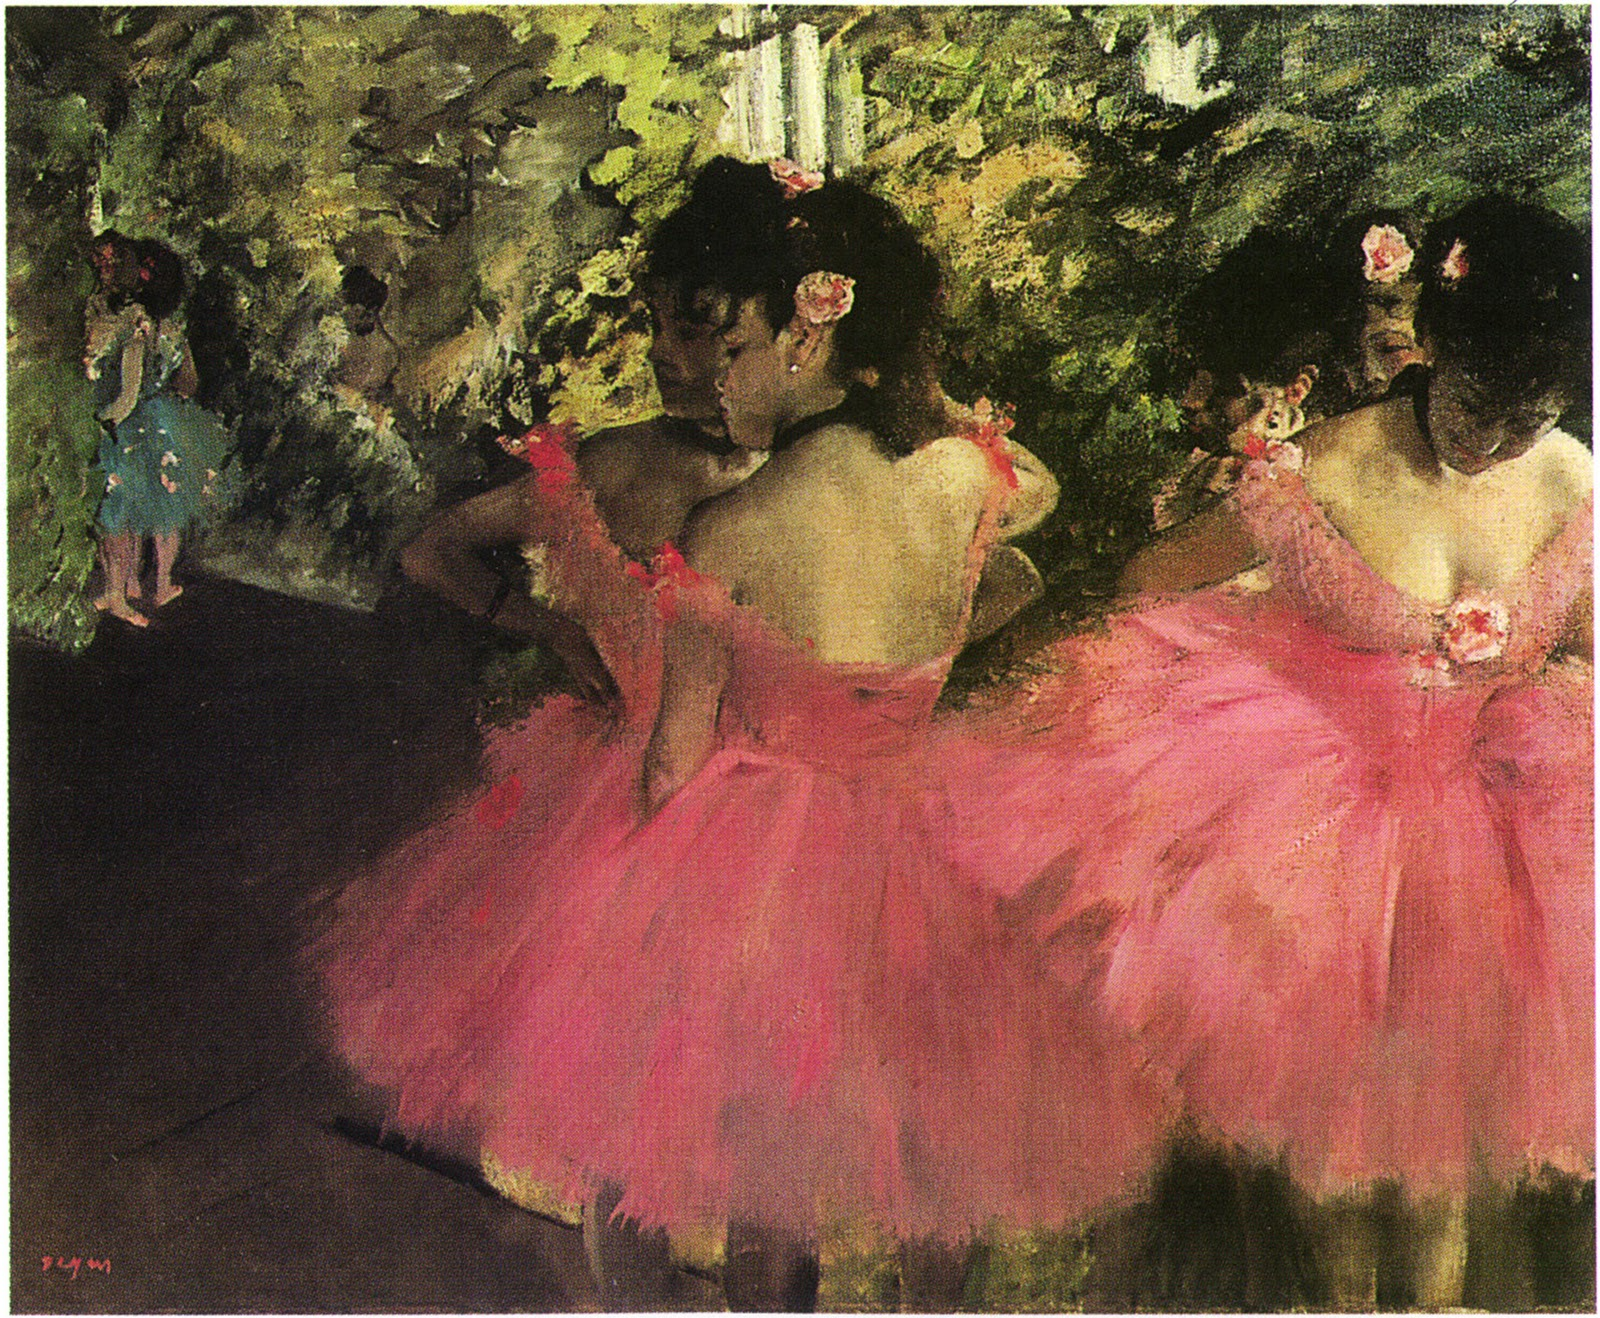 Dancers in Pink, Degas, 1880-1885, Hill-Stead Museum ...